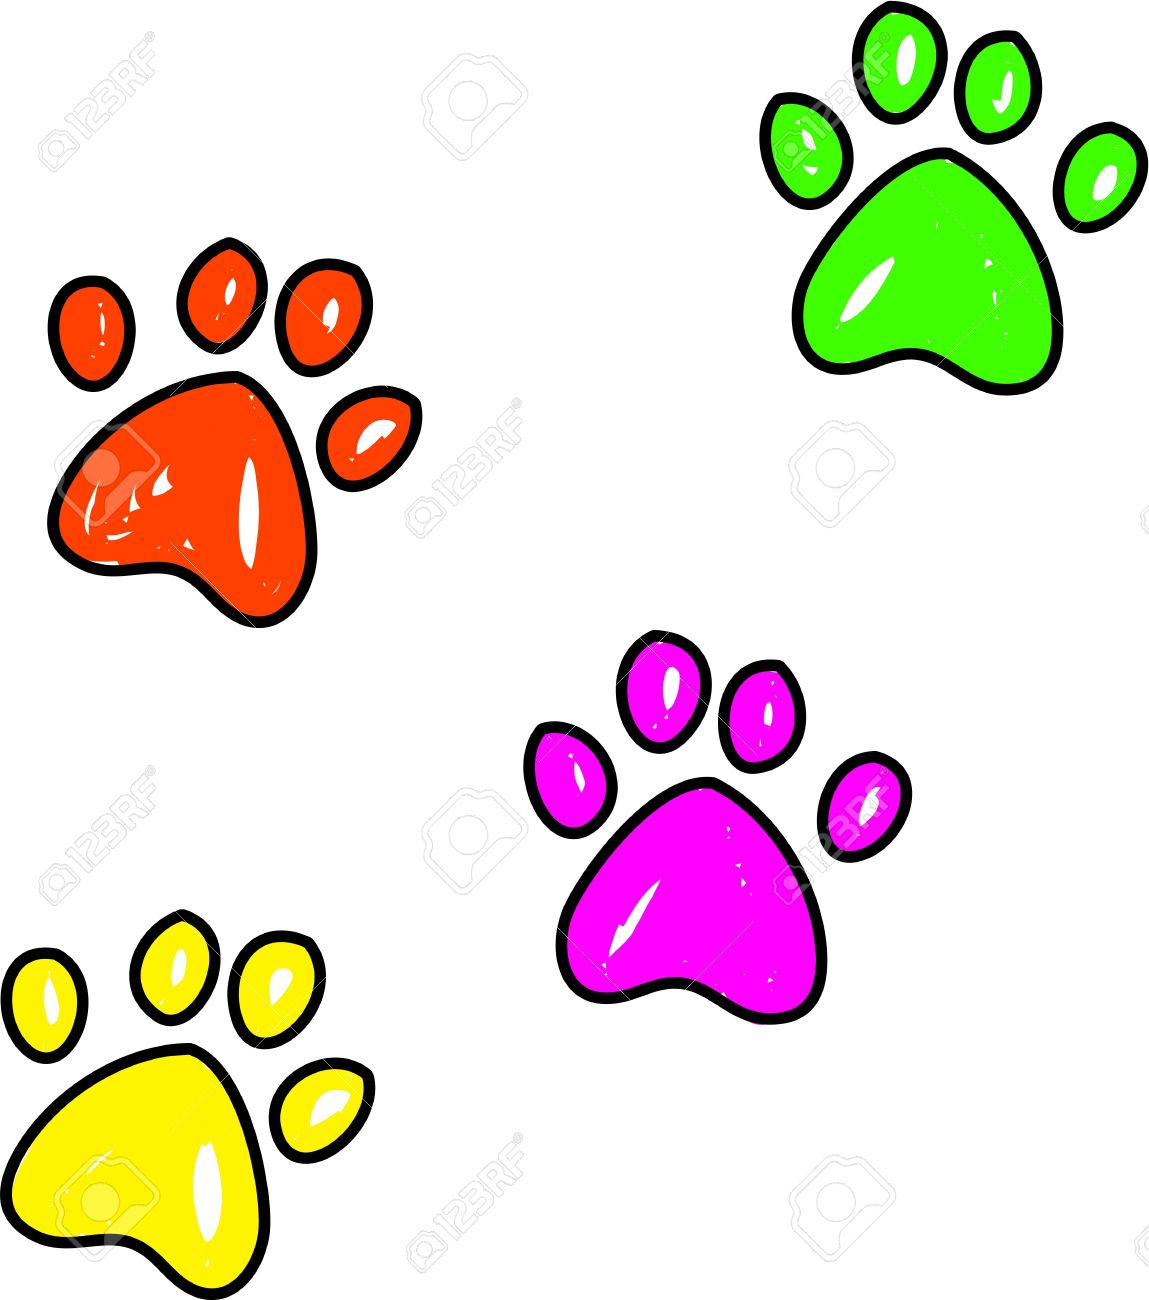 1149x1300 Colourful Whimsical Drawing Of Dog Paw Prints Isolated On White